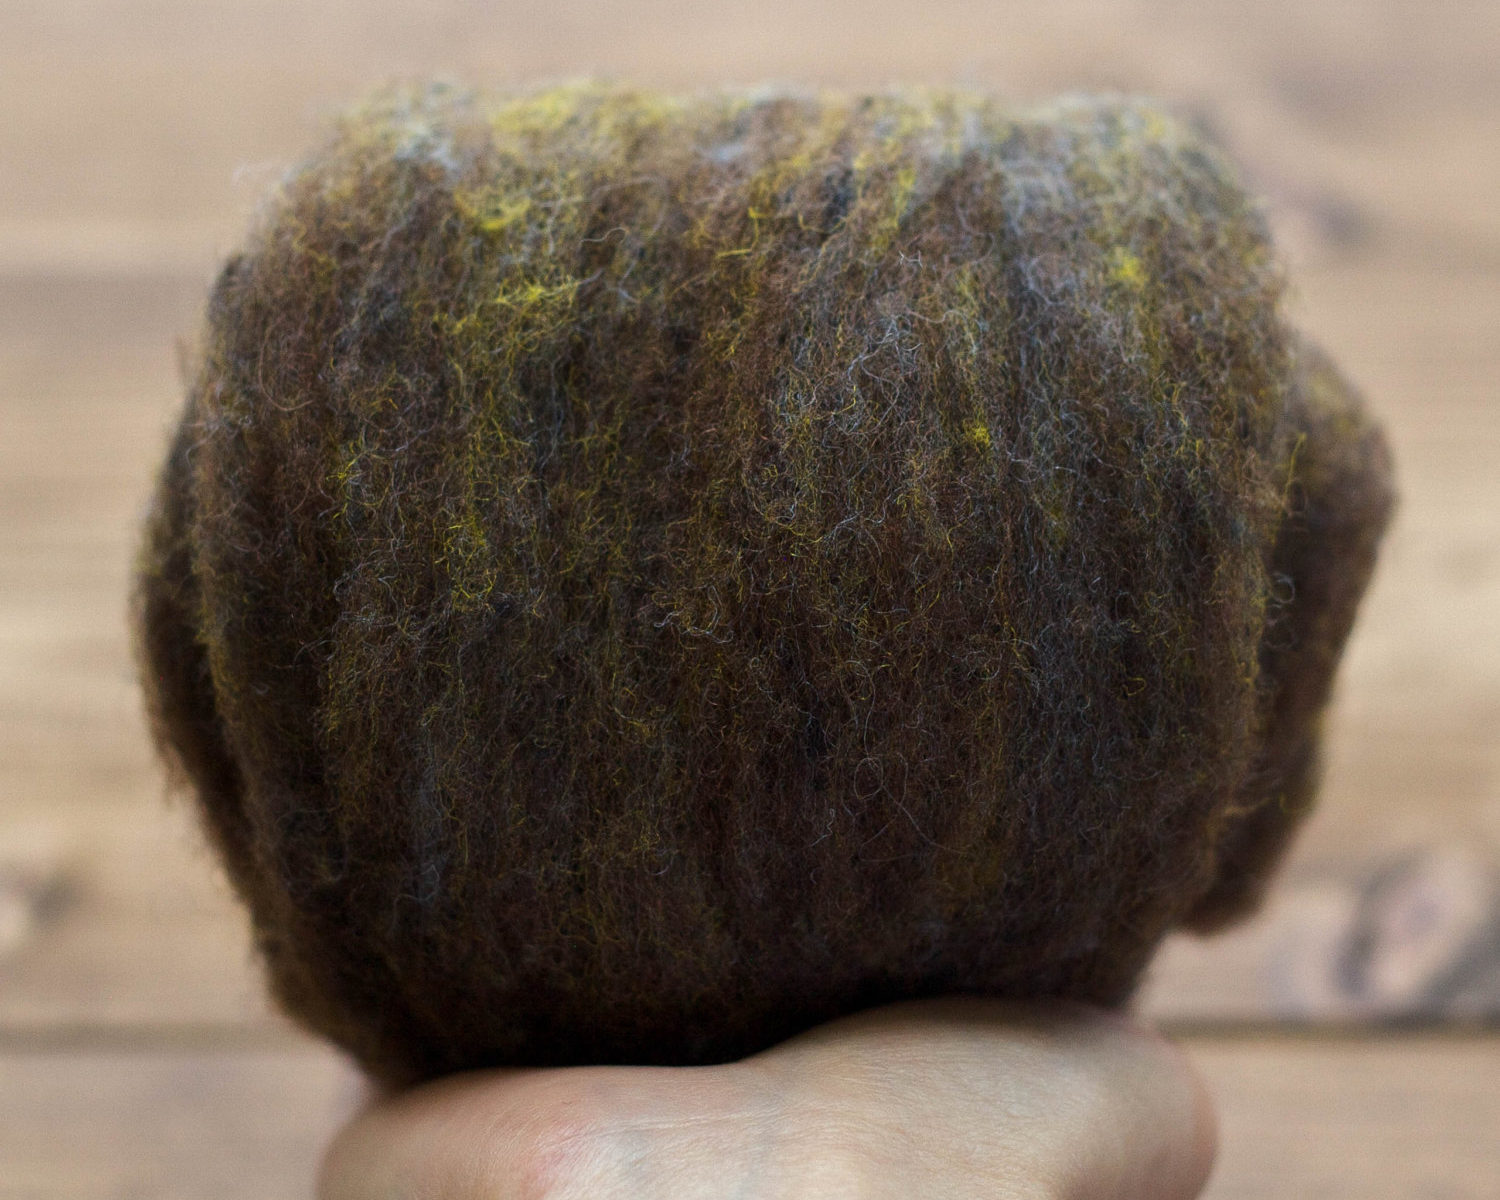 Black Walnut Needle Felting Wool, Wool Batting, Batts, Fleece, Wet Felting, Spinning, Dark Brown, Dyed Felting Wool, Fiber Art Supplies